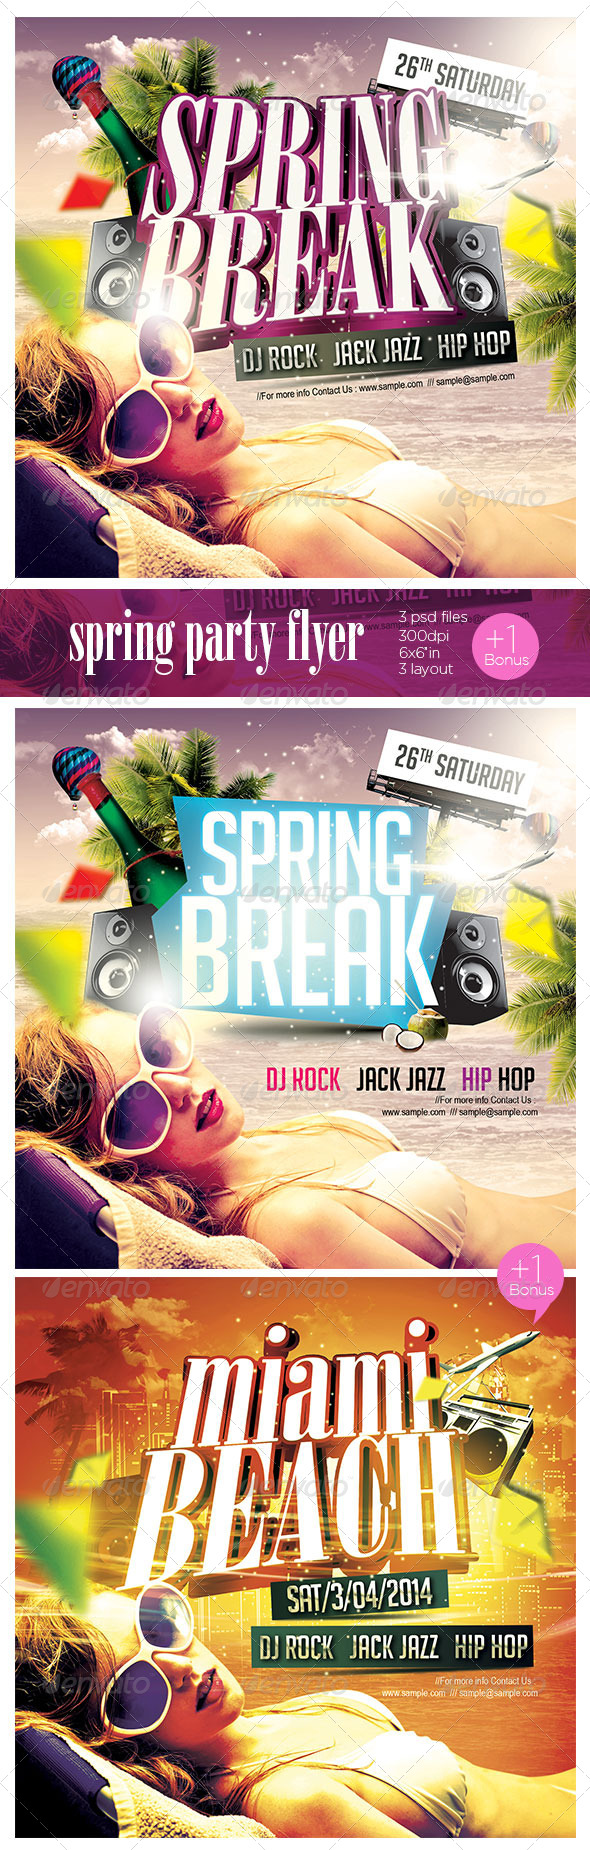 GraphicRiver Spring Break Flyer Template 7286918